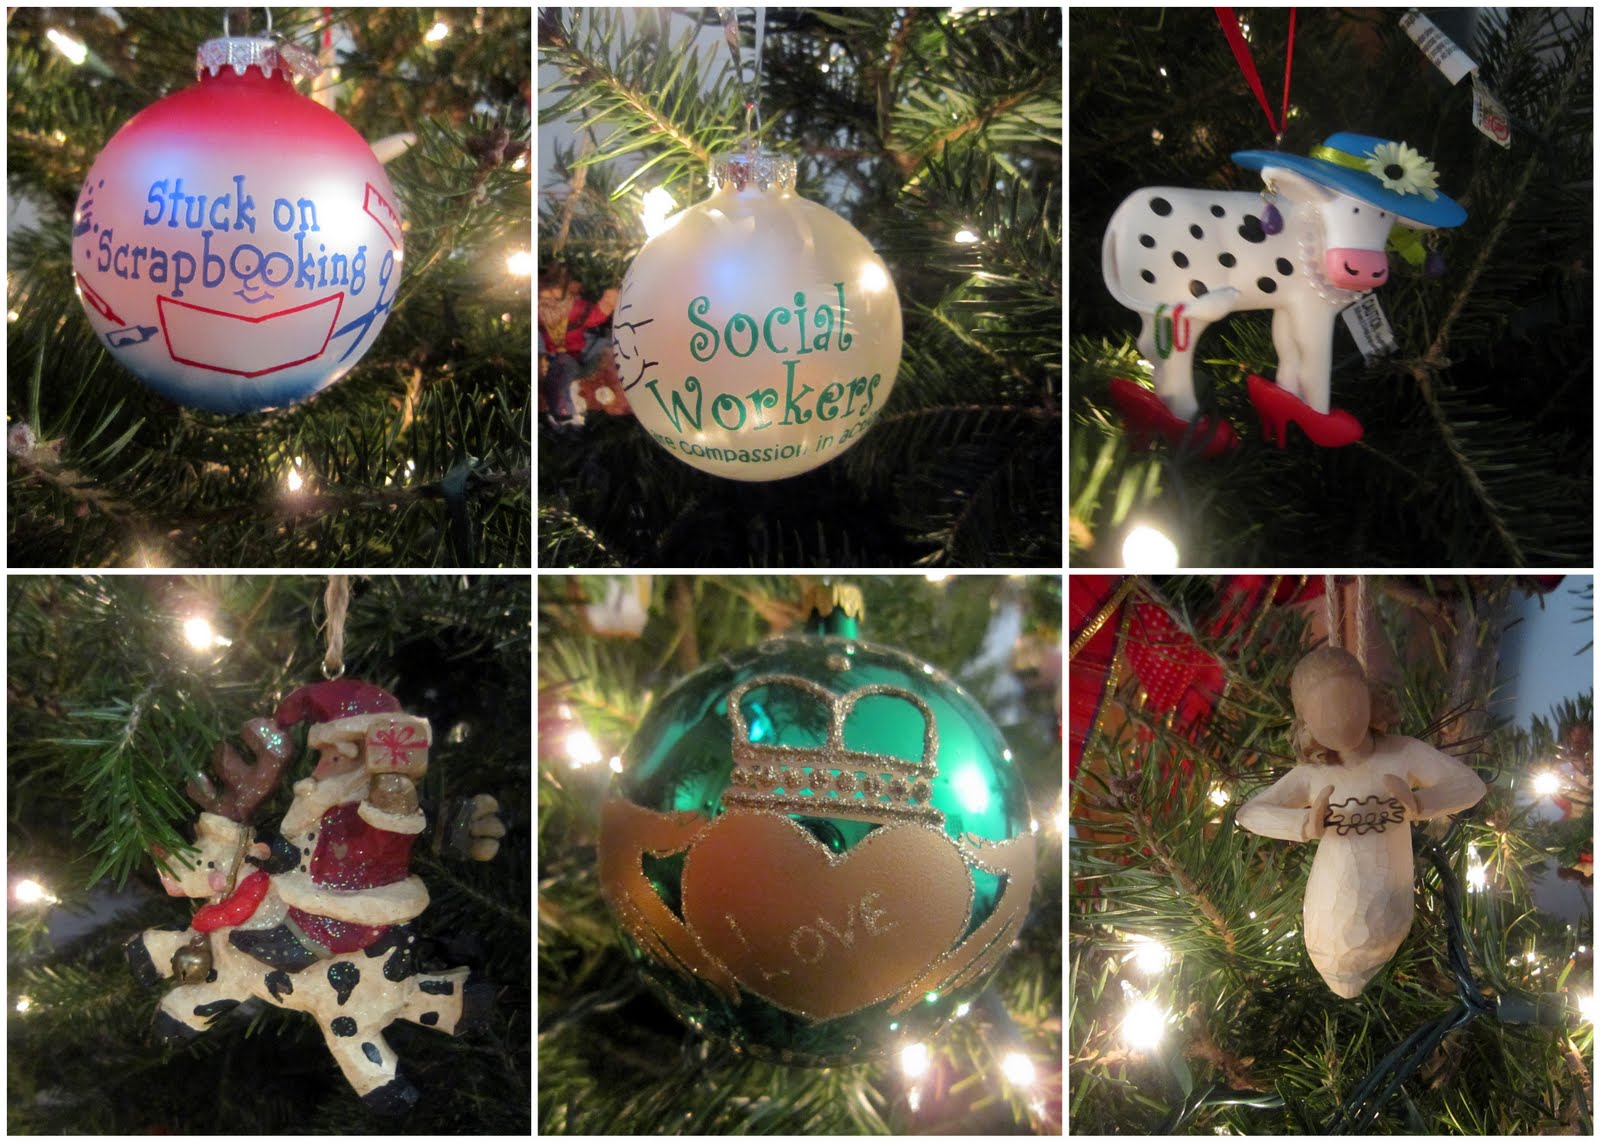 Career christmas ornaments - I Love Having A Real Tree Growing Up I Always Had A Fake Tree And I Still Remember My First Real Tree Once I Was Living On My Own